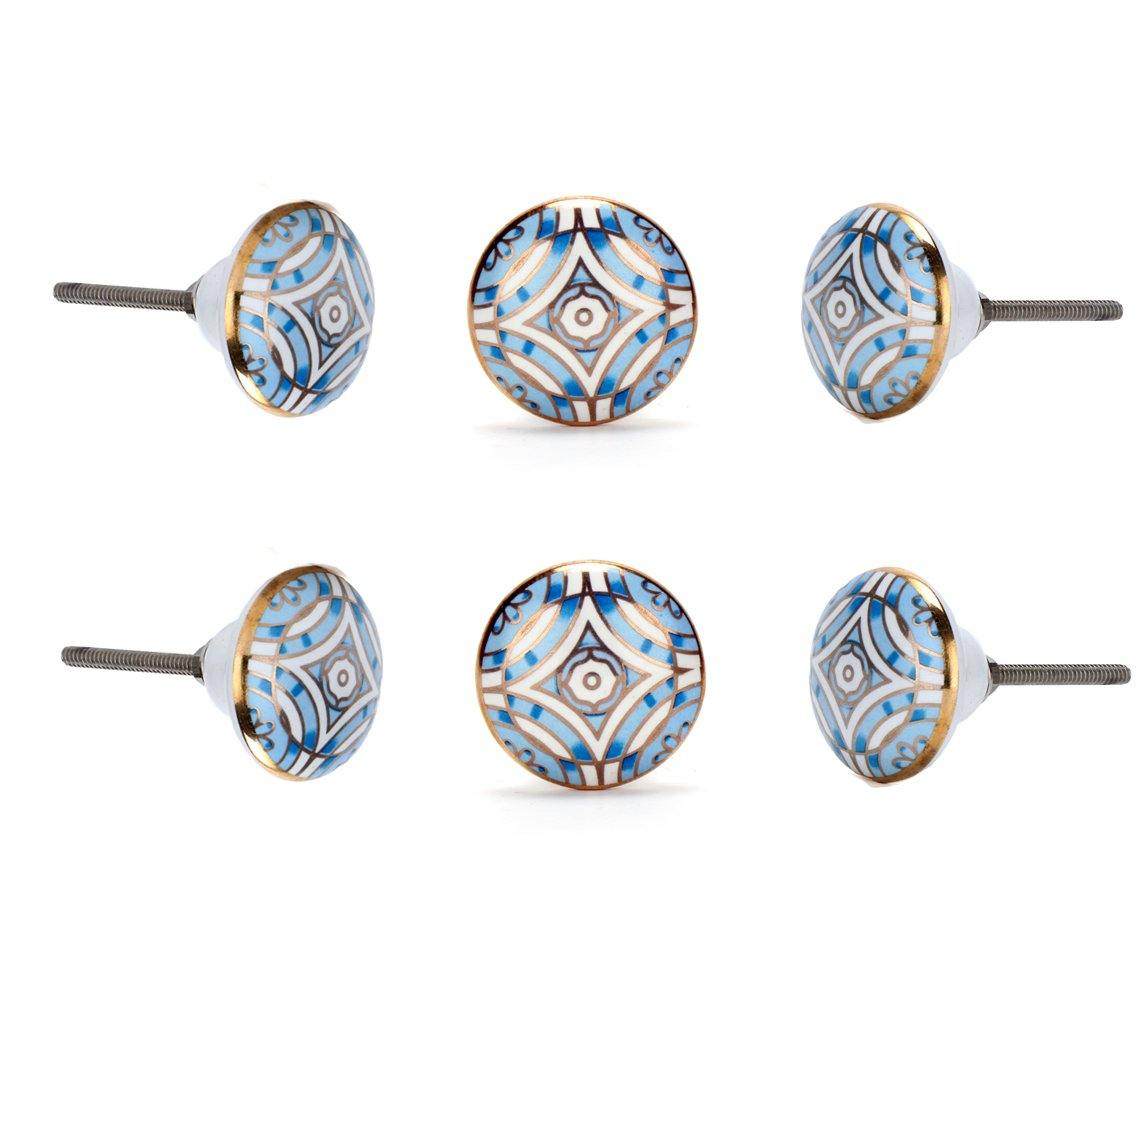 Aster Blue Ceramic Knob ( Set Of 6 ) - Perilla Home